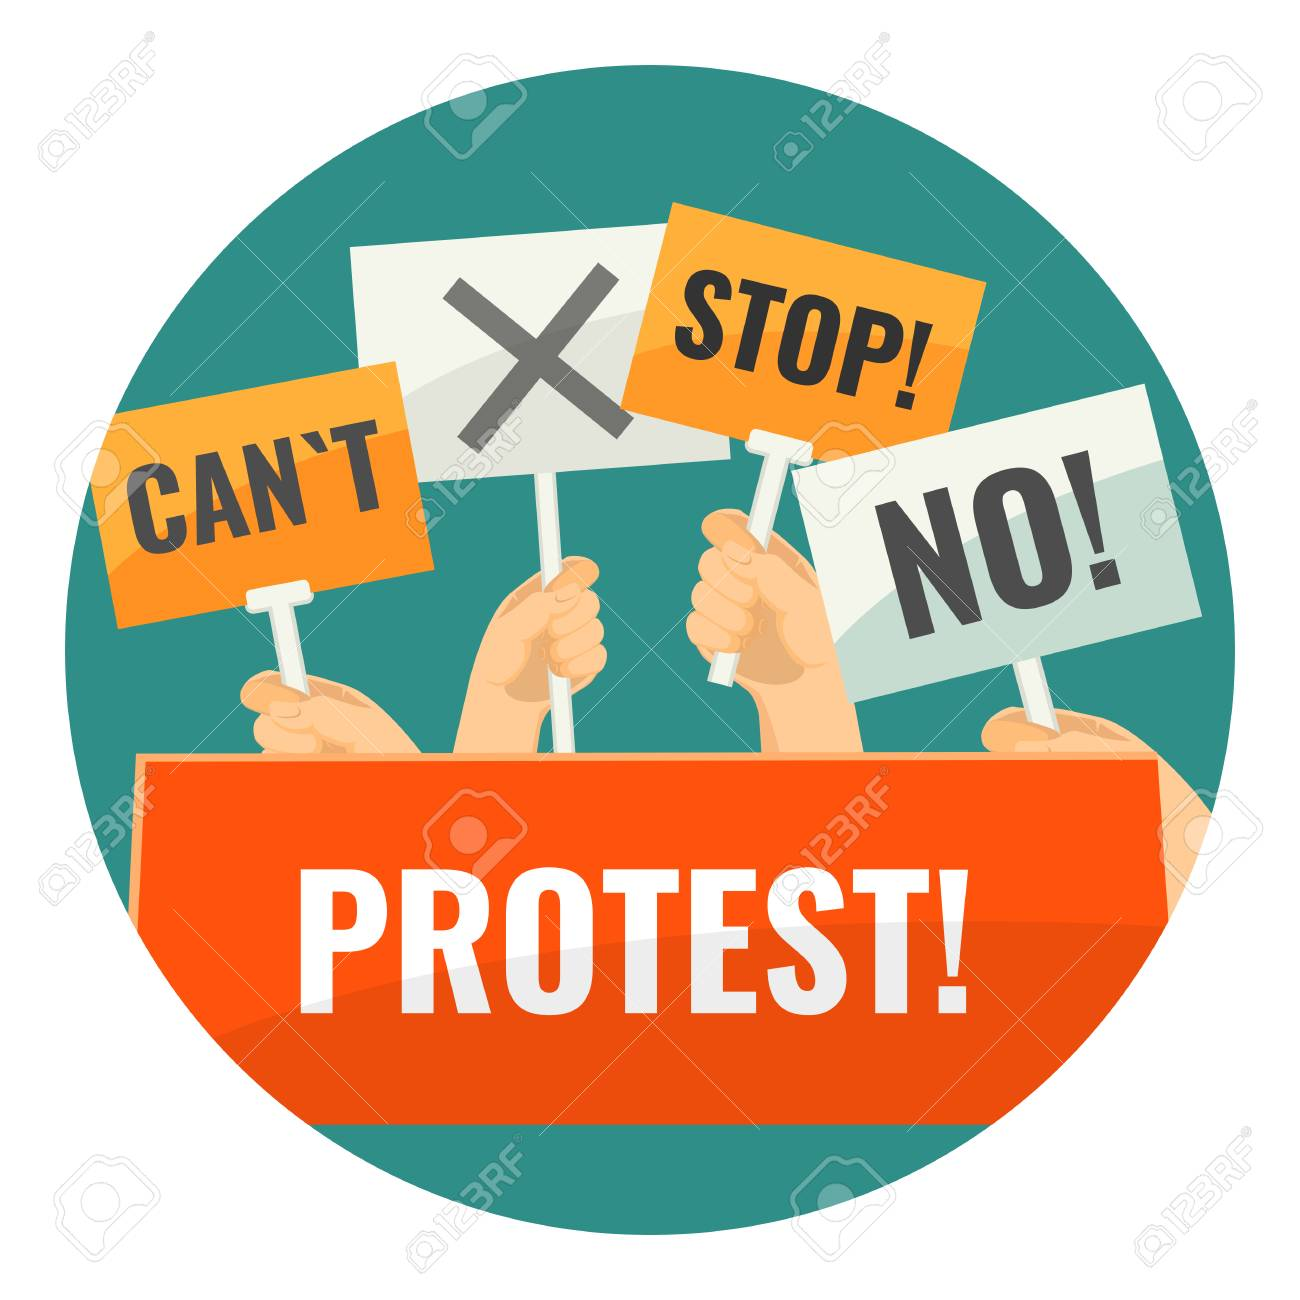 Mass protest with negative cardboard signs on sticks - 90365982